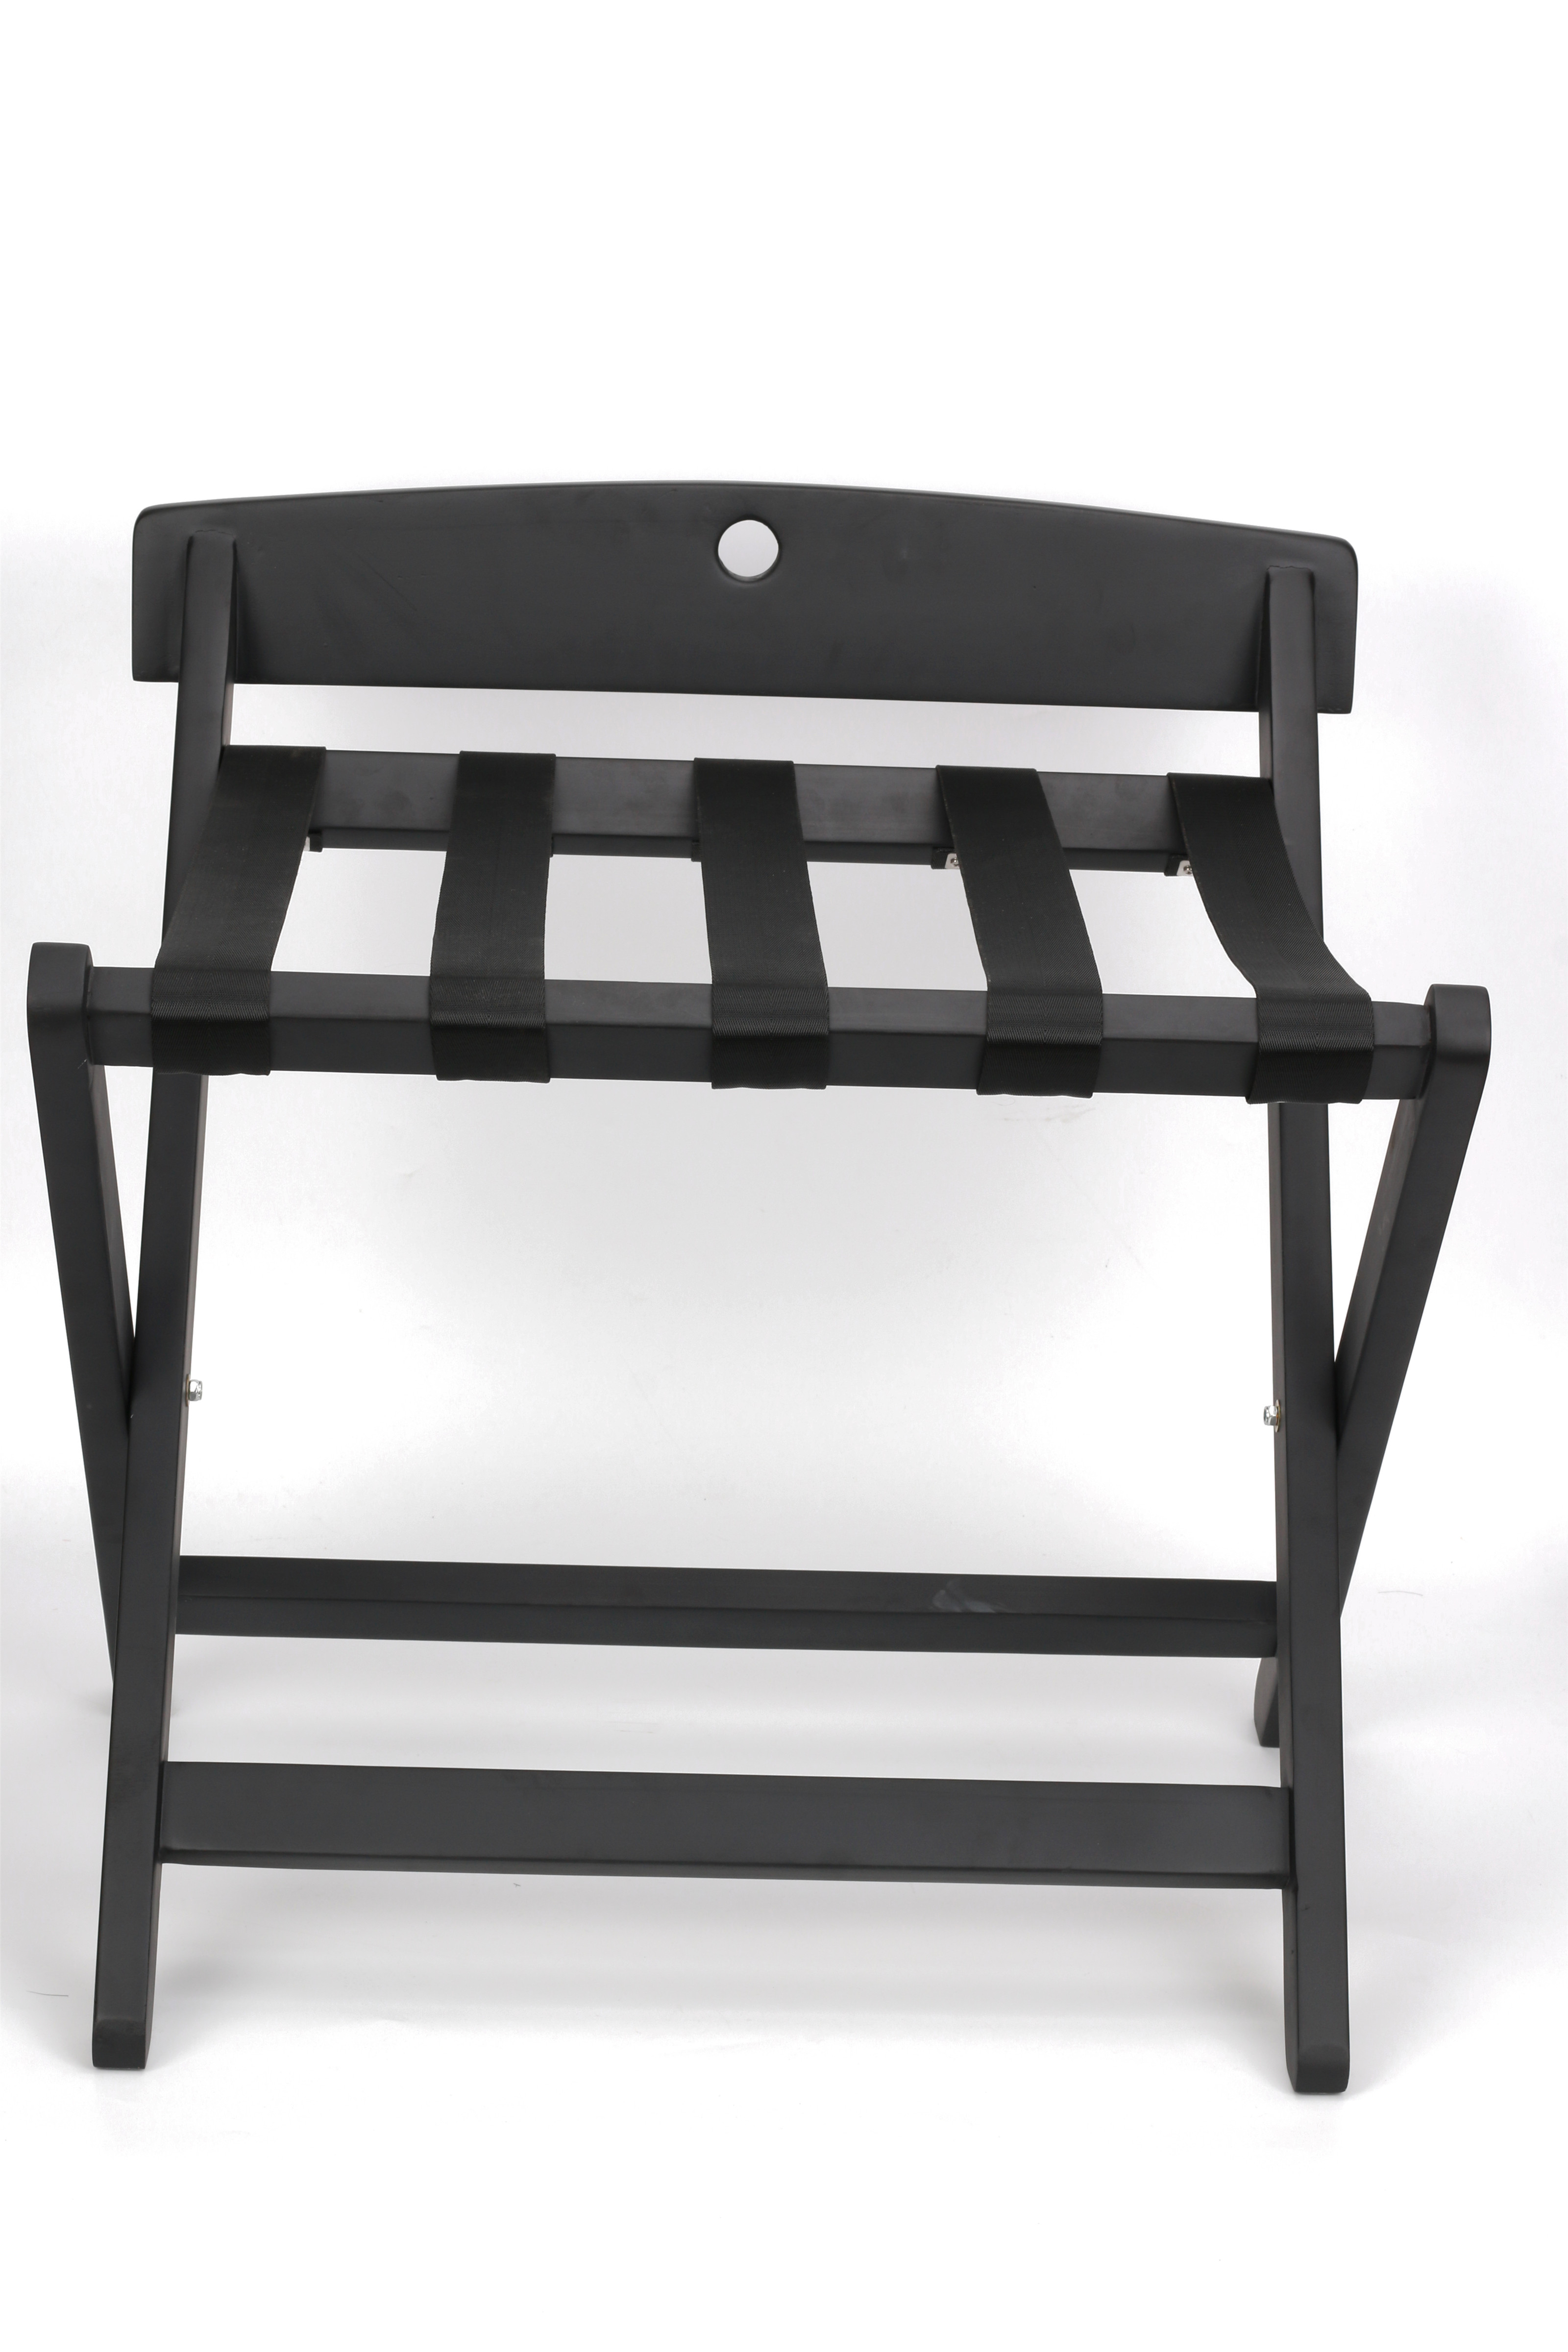 OEM BSCI Factory FSC Wood Folding Hotel Luggage Rack For Hotel Supplies